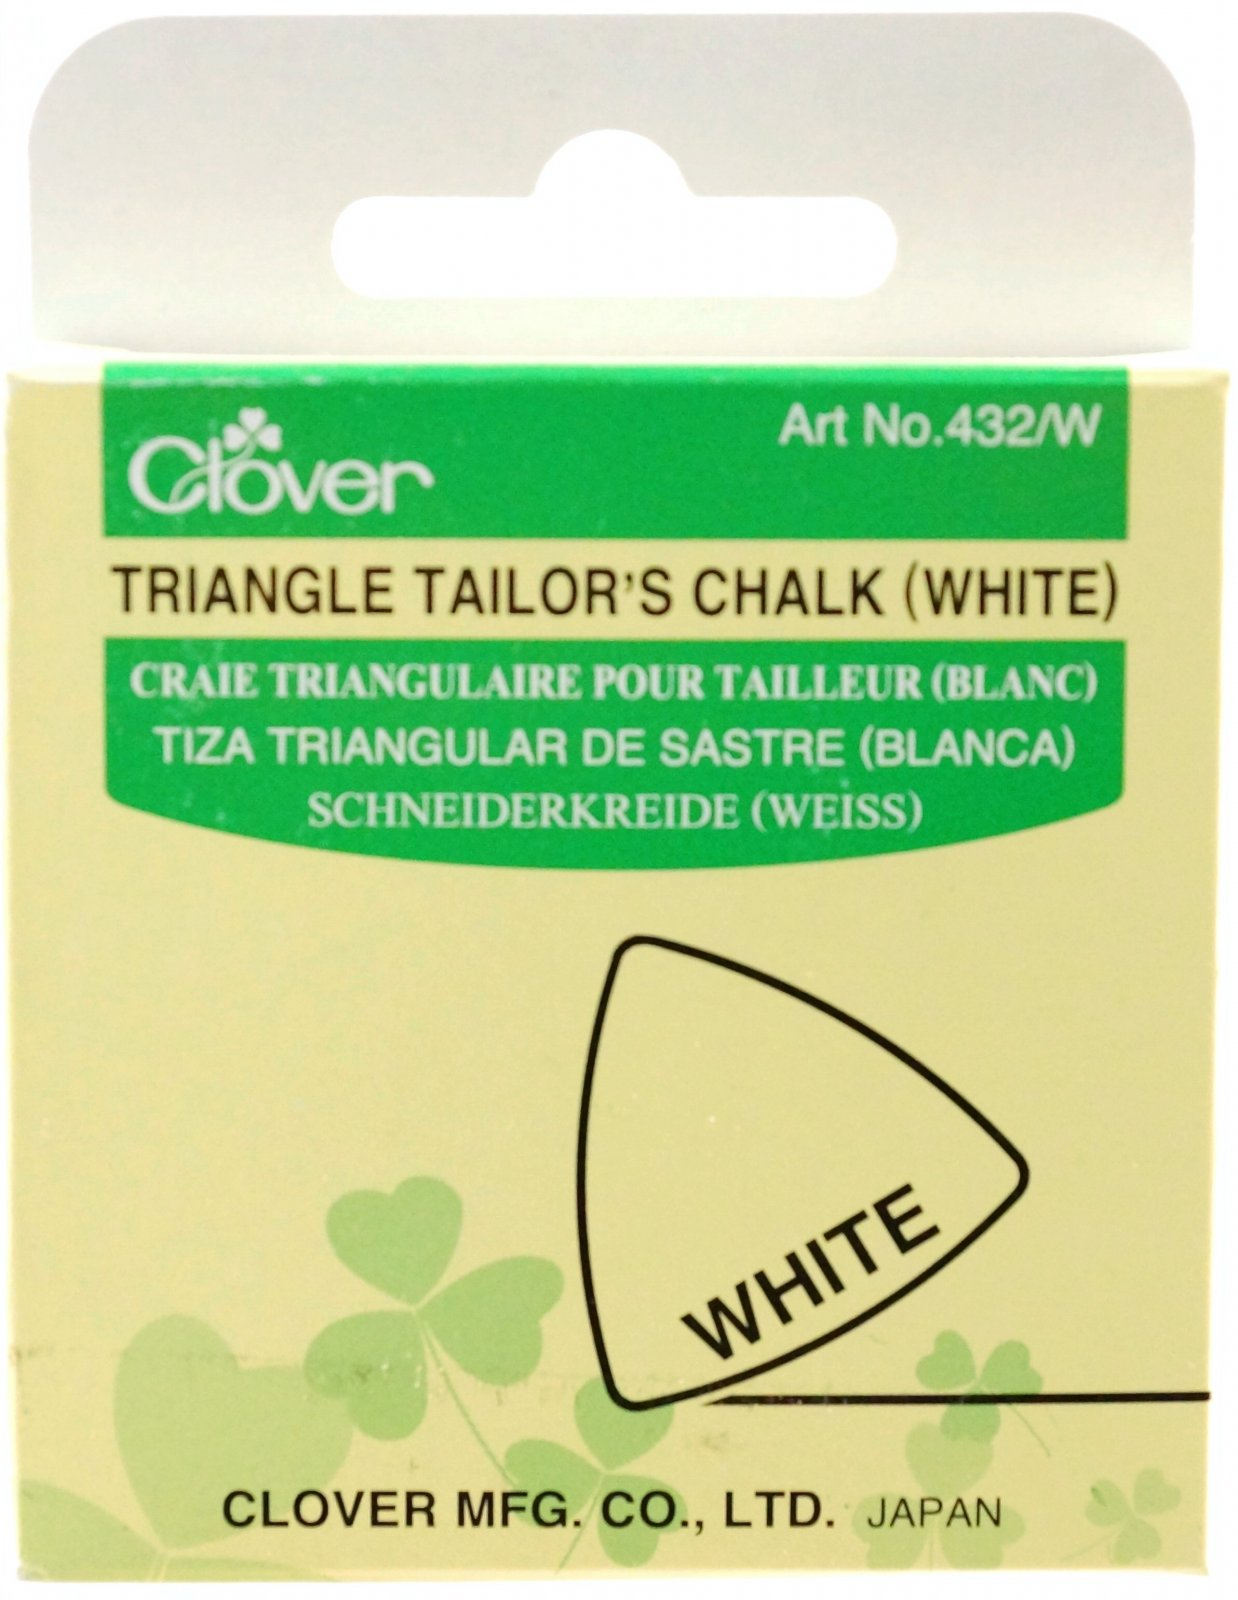 Clover - 432/W Triangle Tailor's Chalk (White)